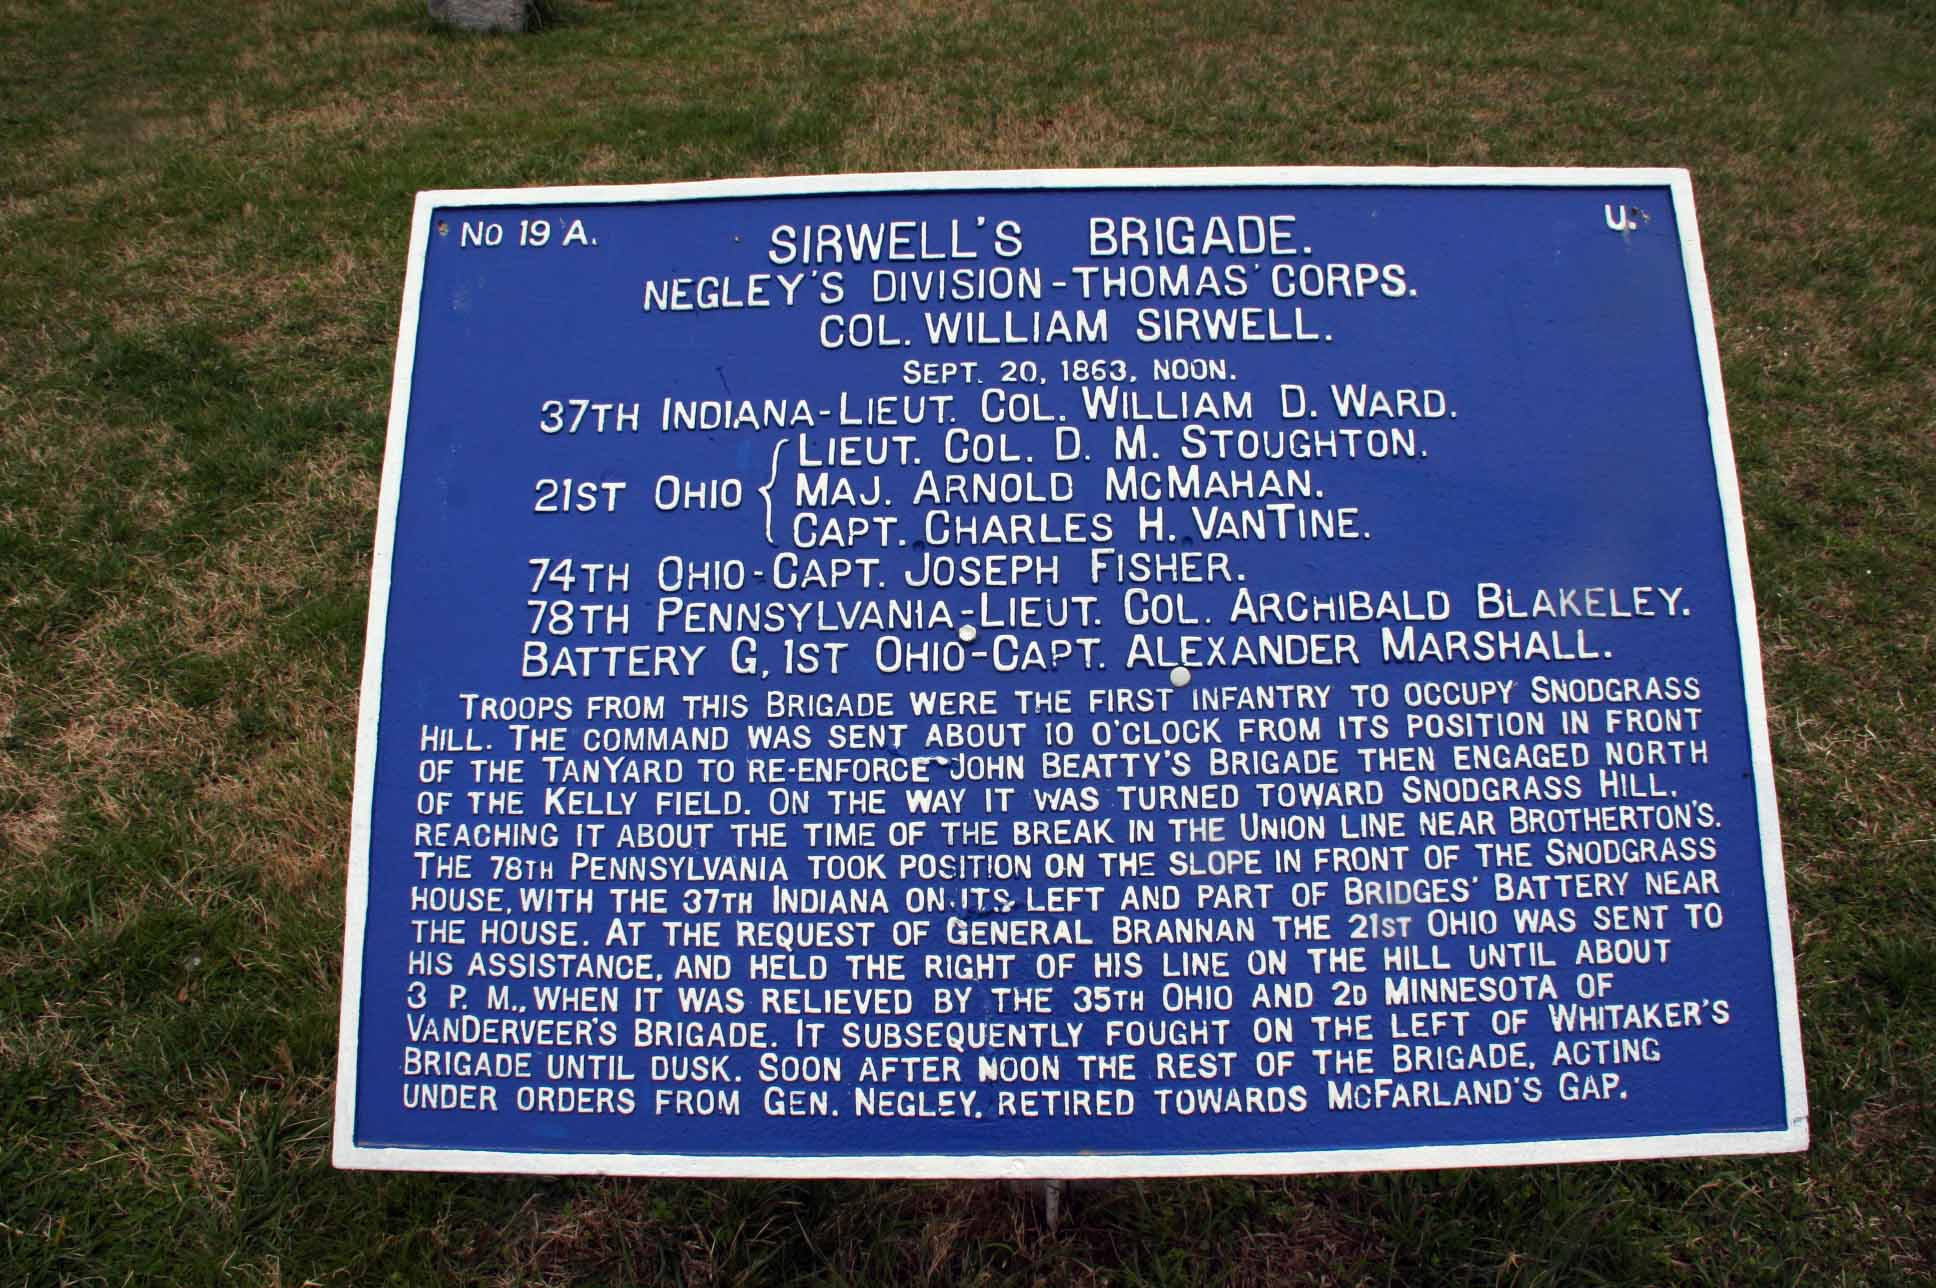 Sirwell's Brigade (USA) Tablet, click photo to enlarge.